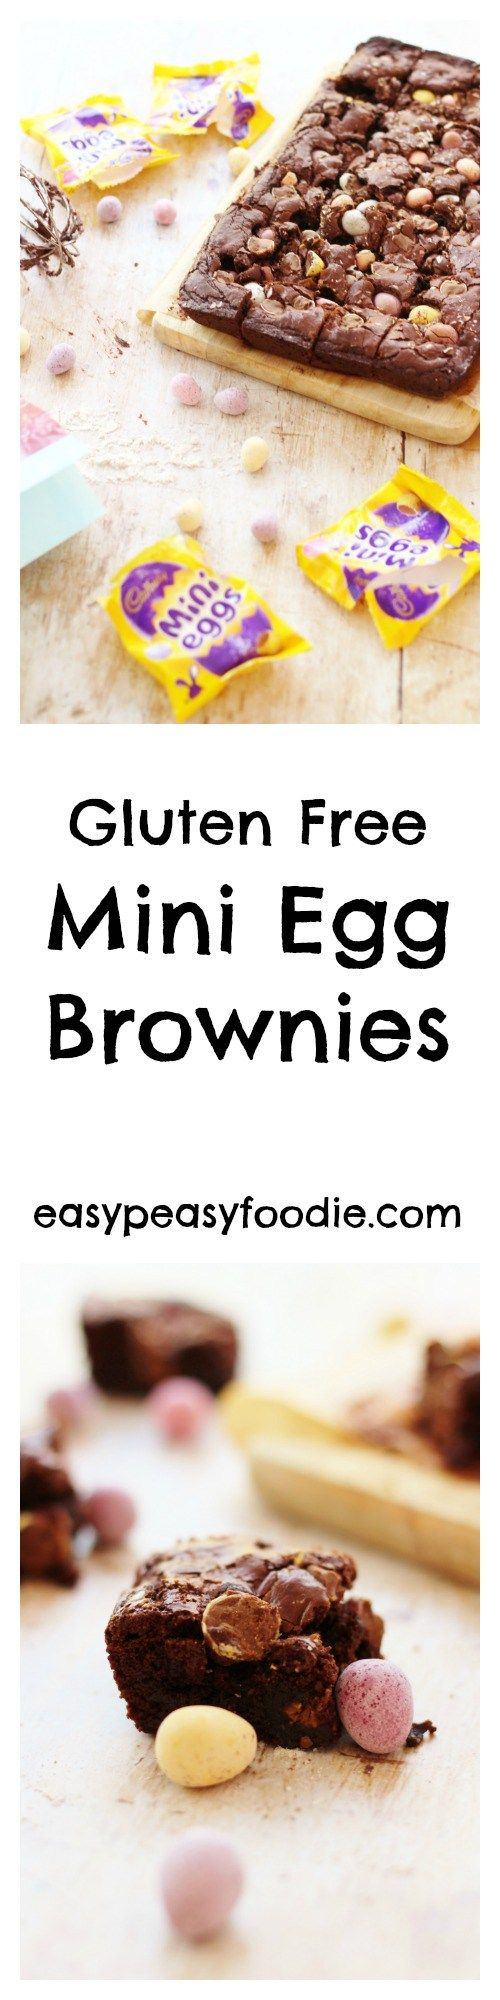 A really easy recipe for gluten free Mini Egg Brownies that are deliciously fudgy and chewy on the inside and crunchy on the outside, stuffed full of little mini eggs, making them perfect for Easter!